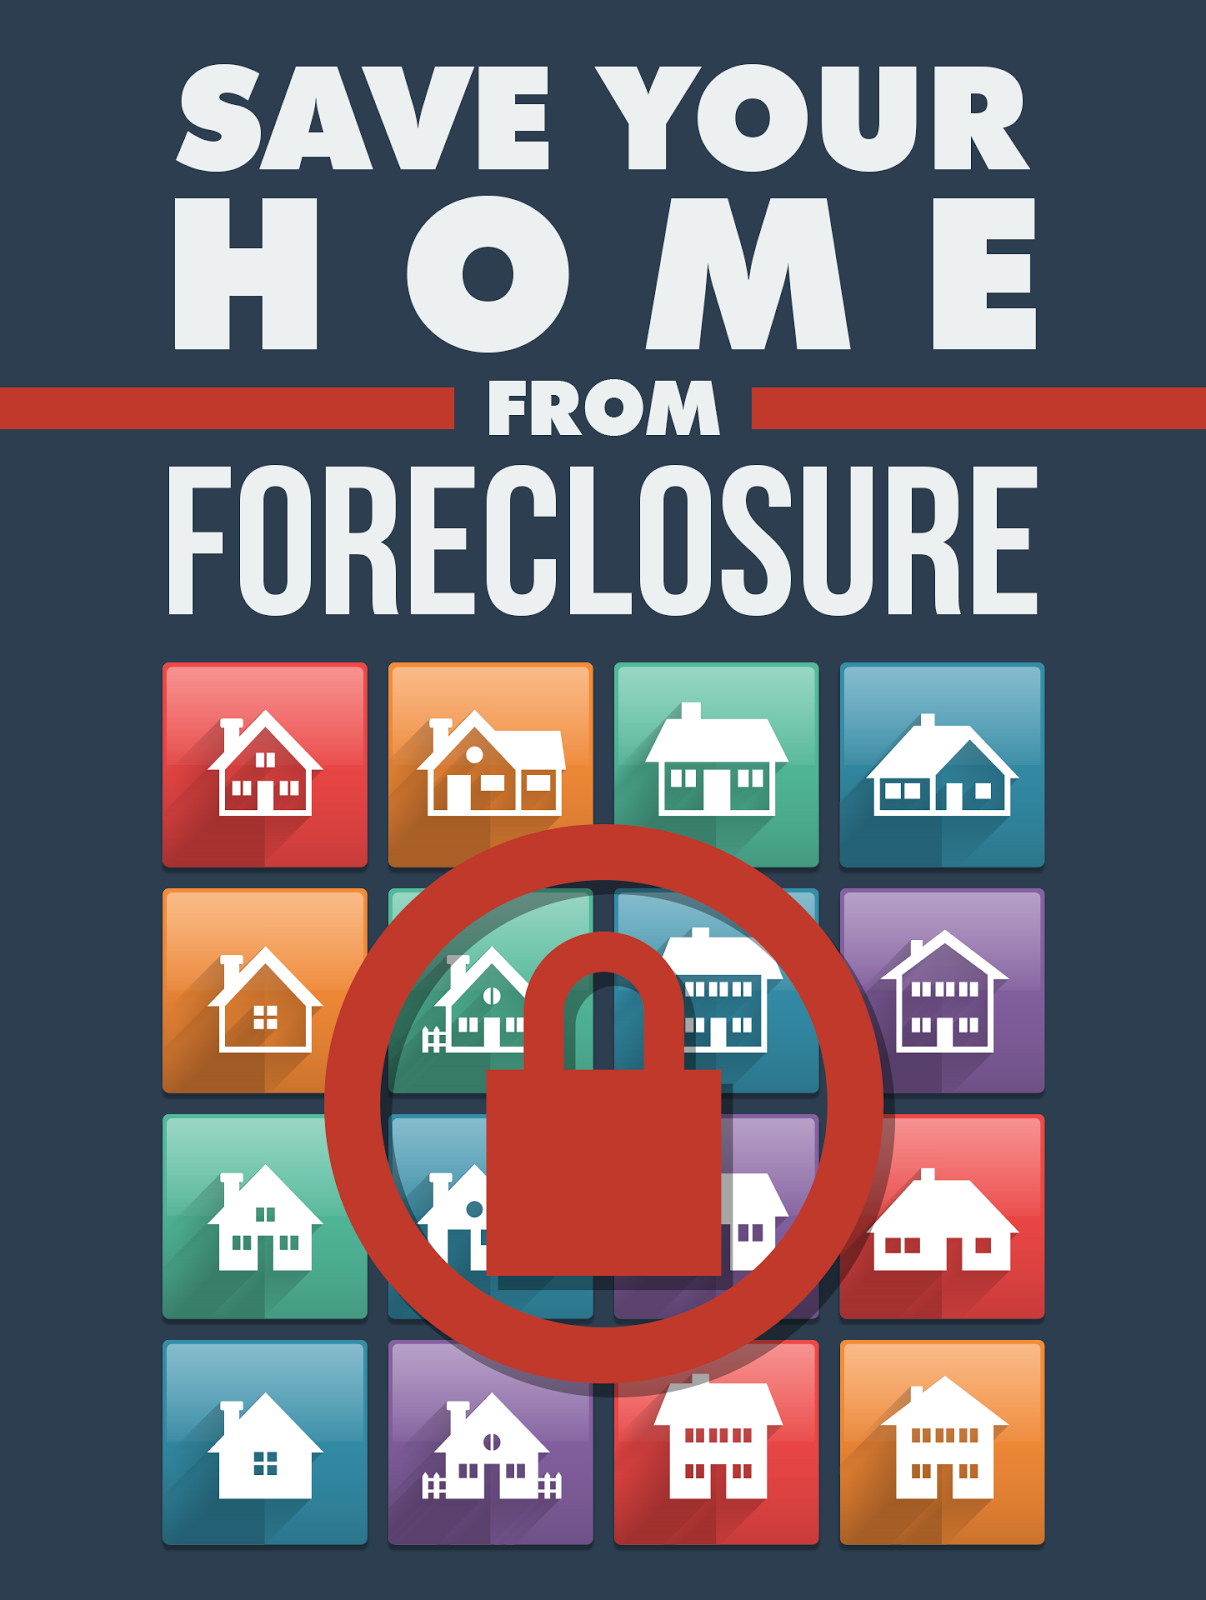 Foreclosure Meaning